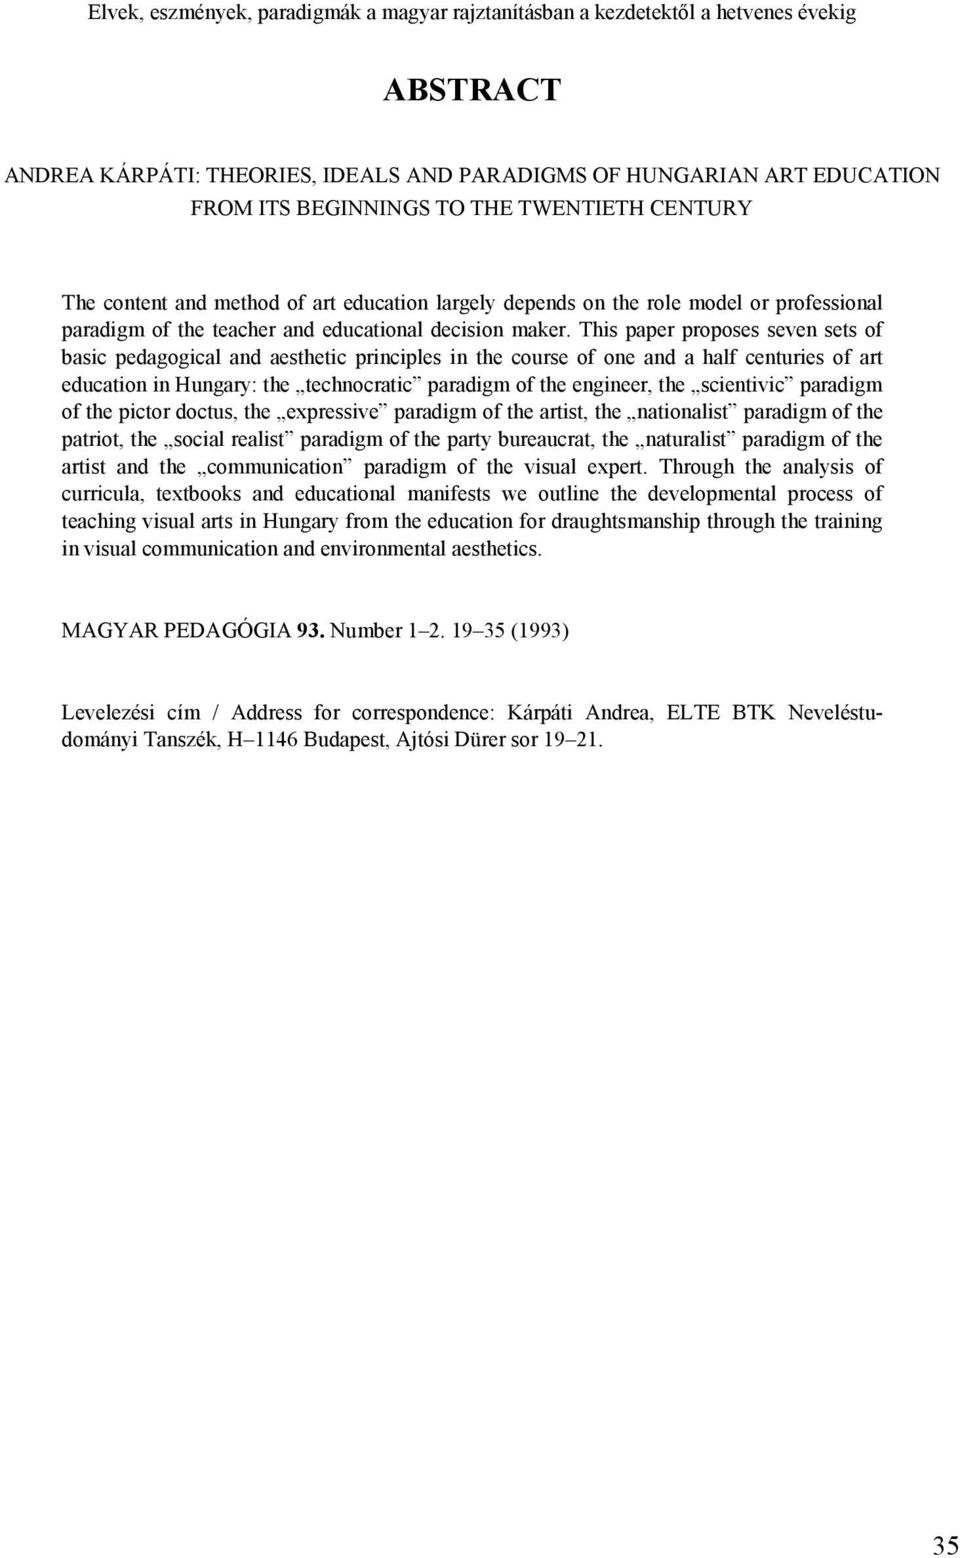 This paper proposes seven sets of basic pedagogical and aesthetic principles in the course of one and a half centuries of art education in Hungary: the technocratic paradigm of the engineer, the